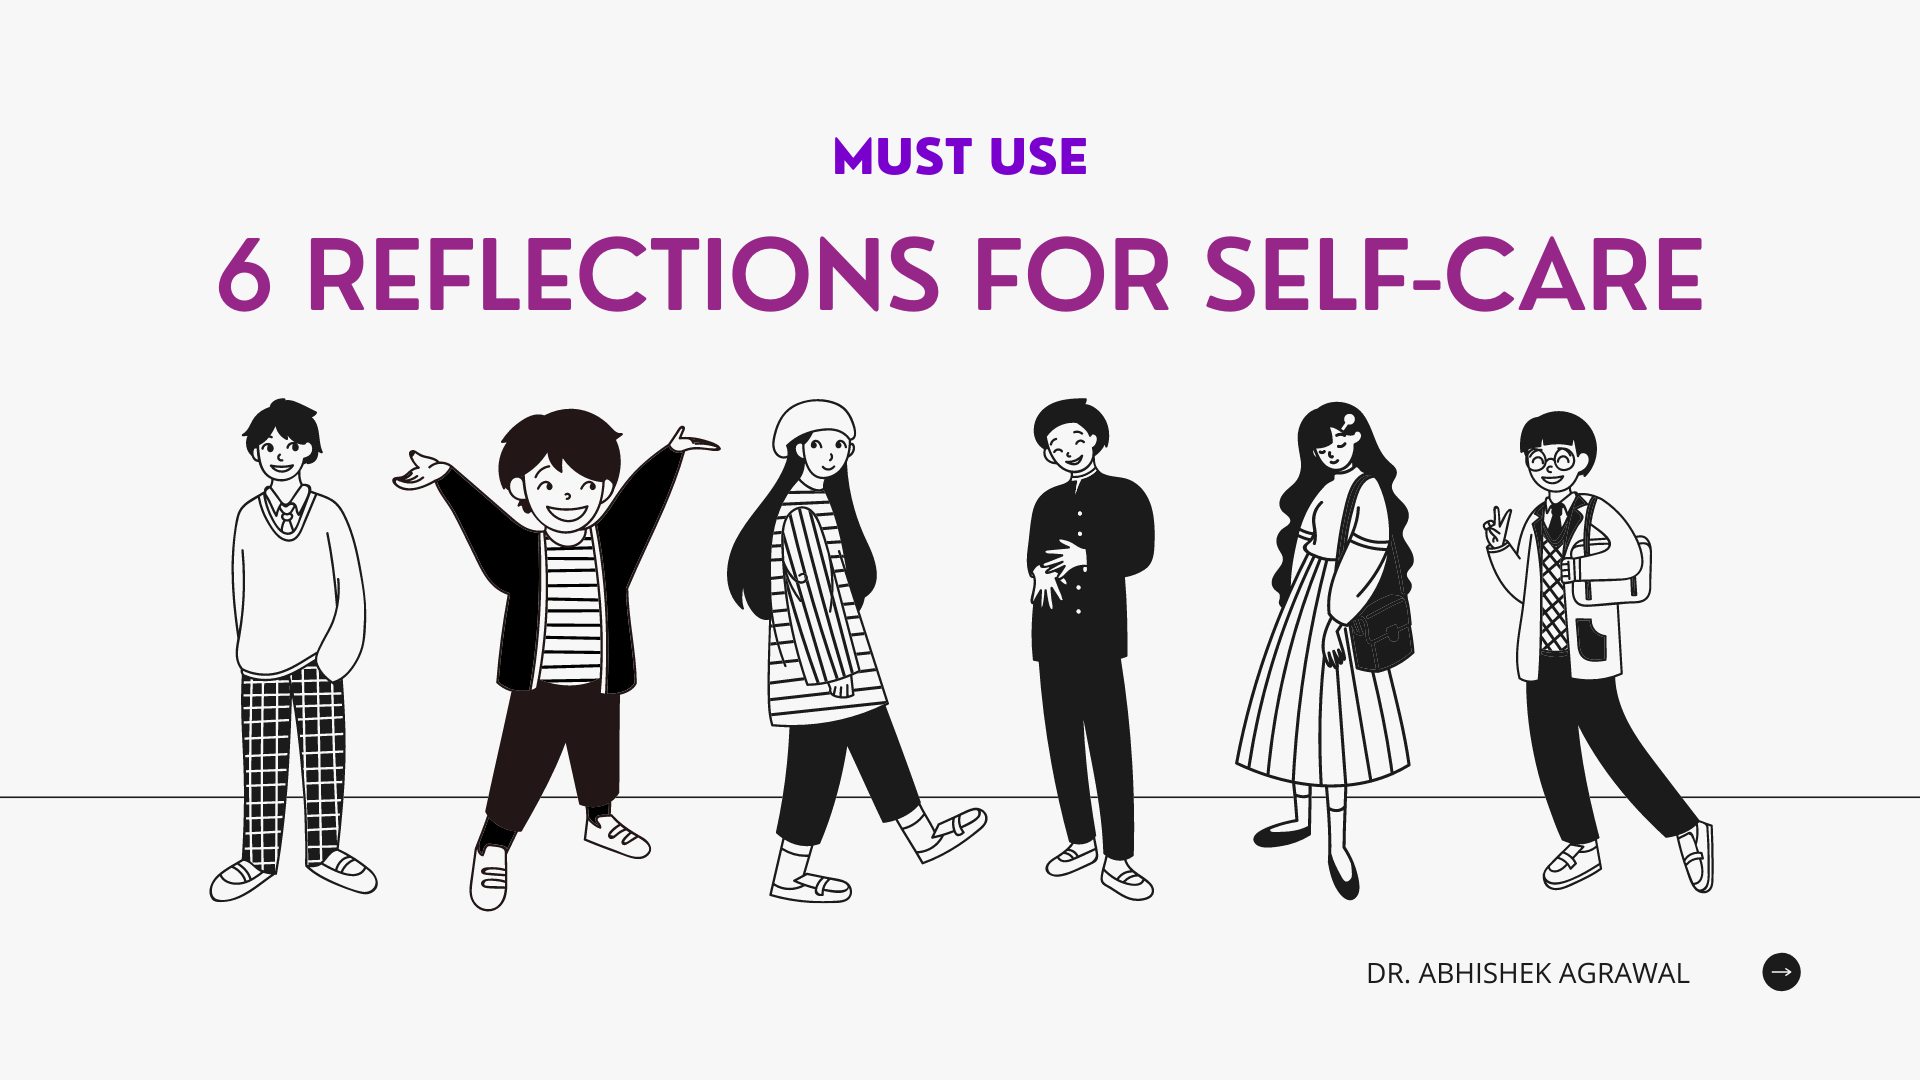 6 Reflections You Must Use For Self-Care